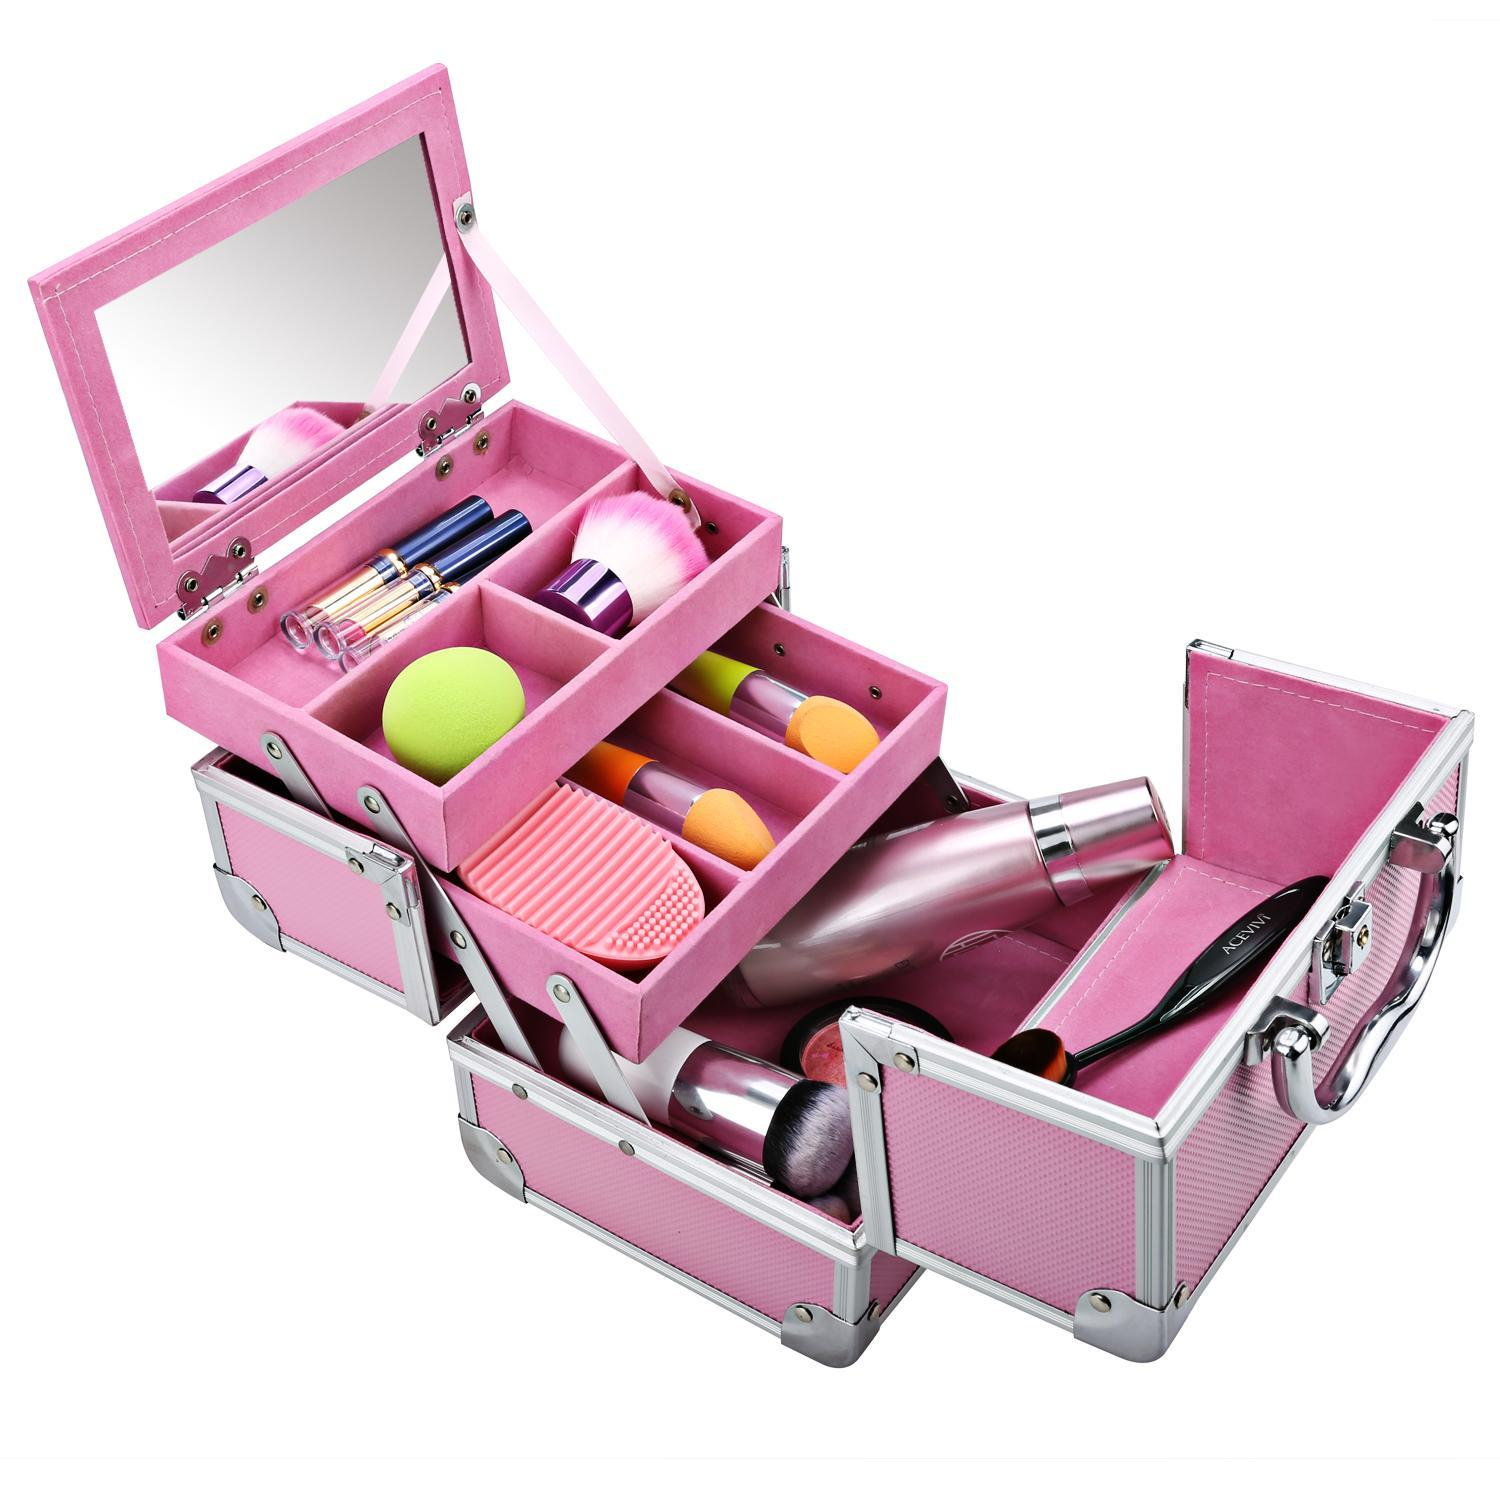 "Black Friday Clearance!  Cosmetic Train Case - 3-Tier Travel Portable Mini Makeup Case Cosmetic Organizer Box with Lock 8""x 6"" x 6"""